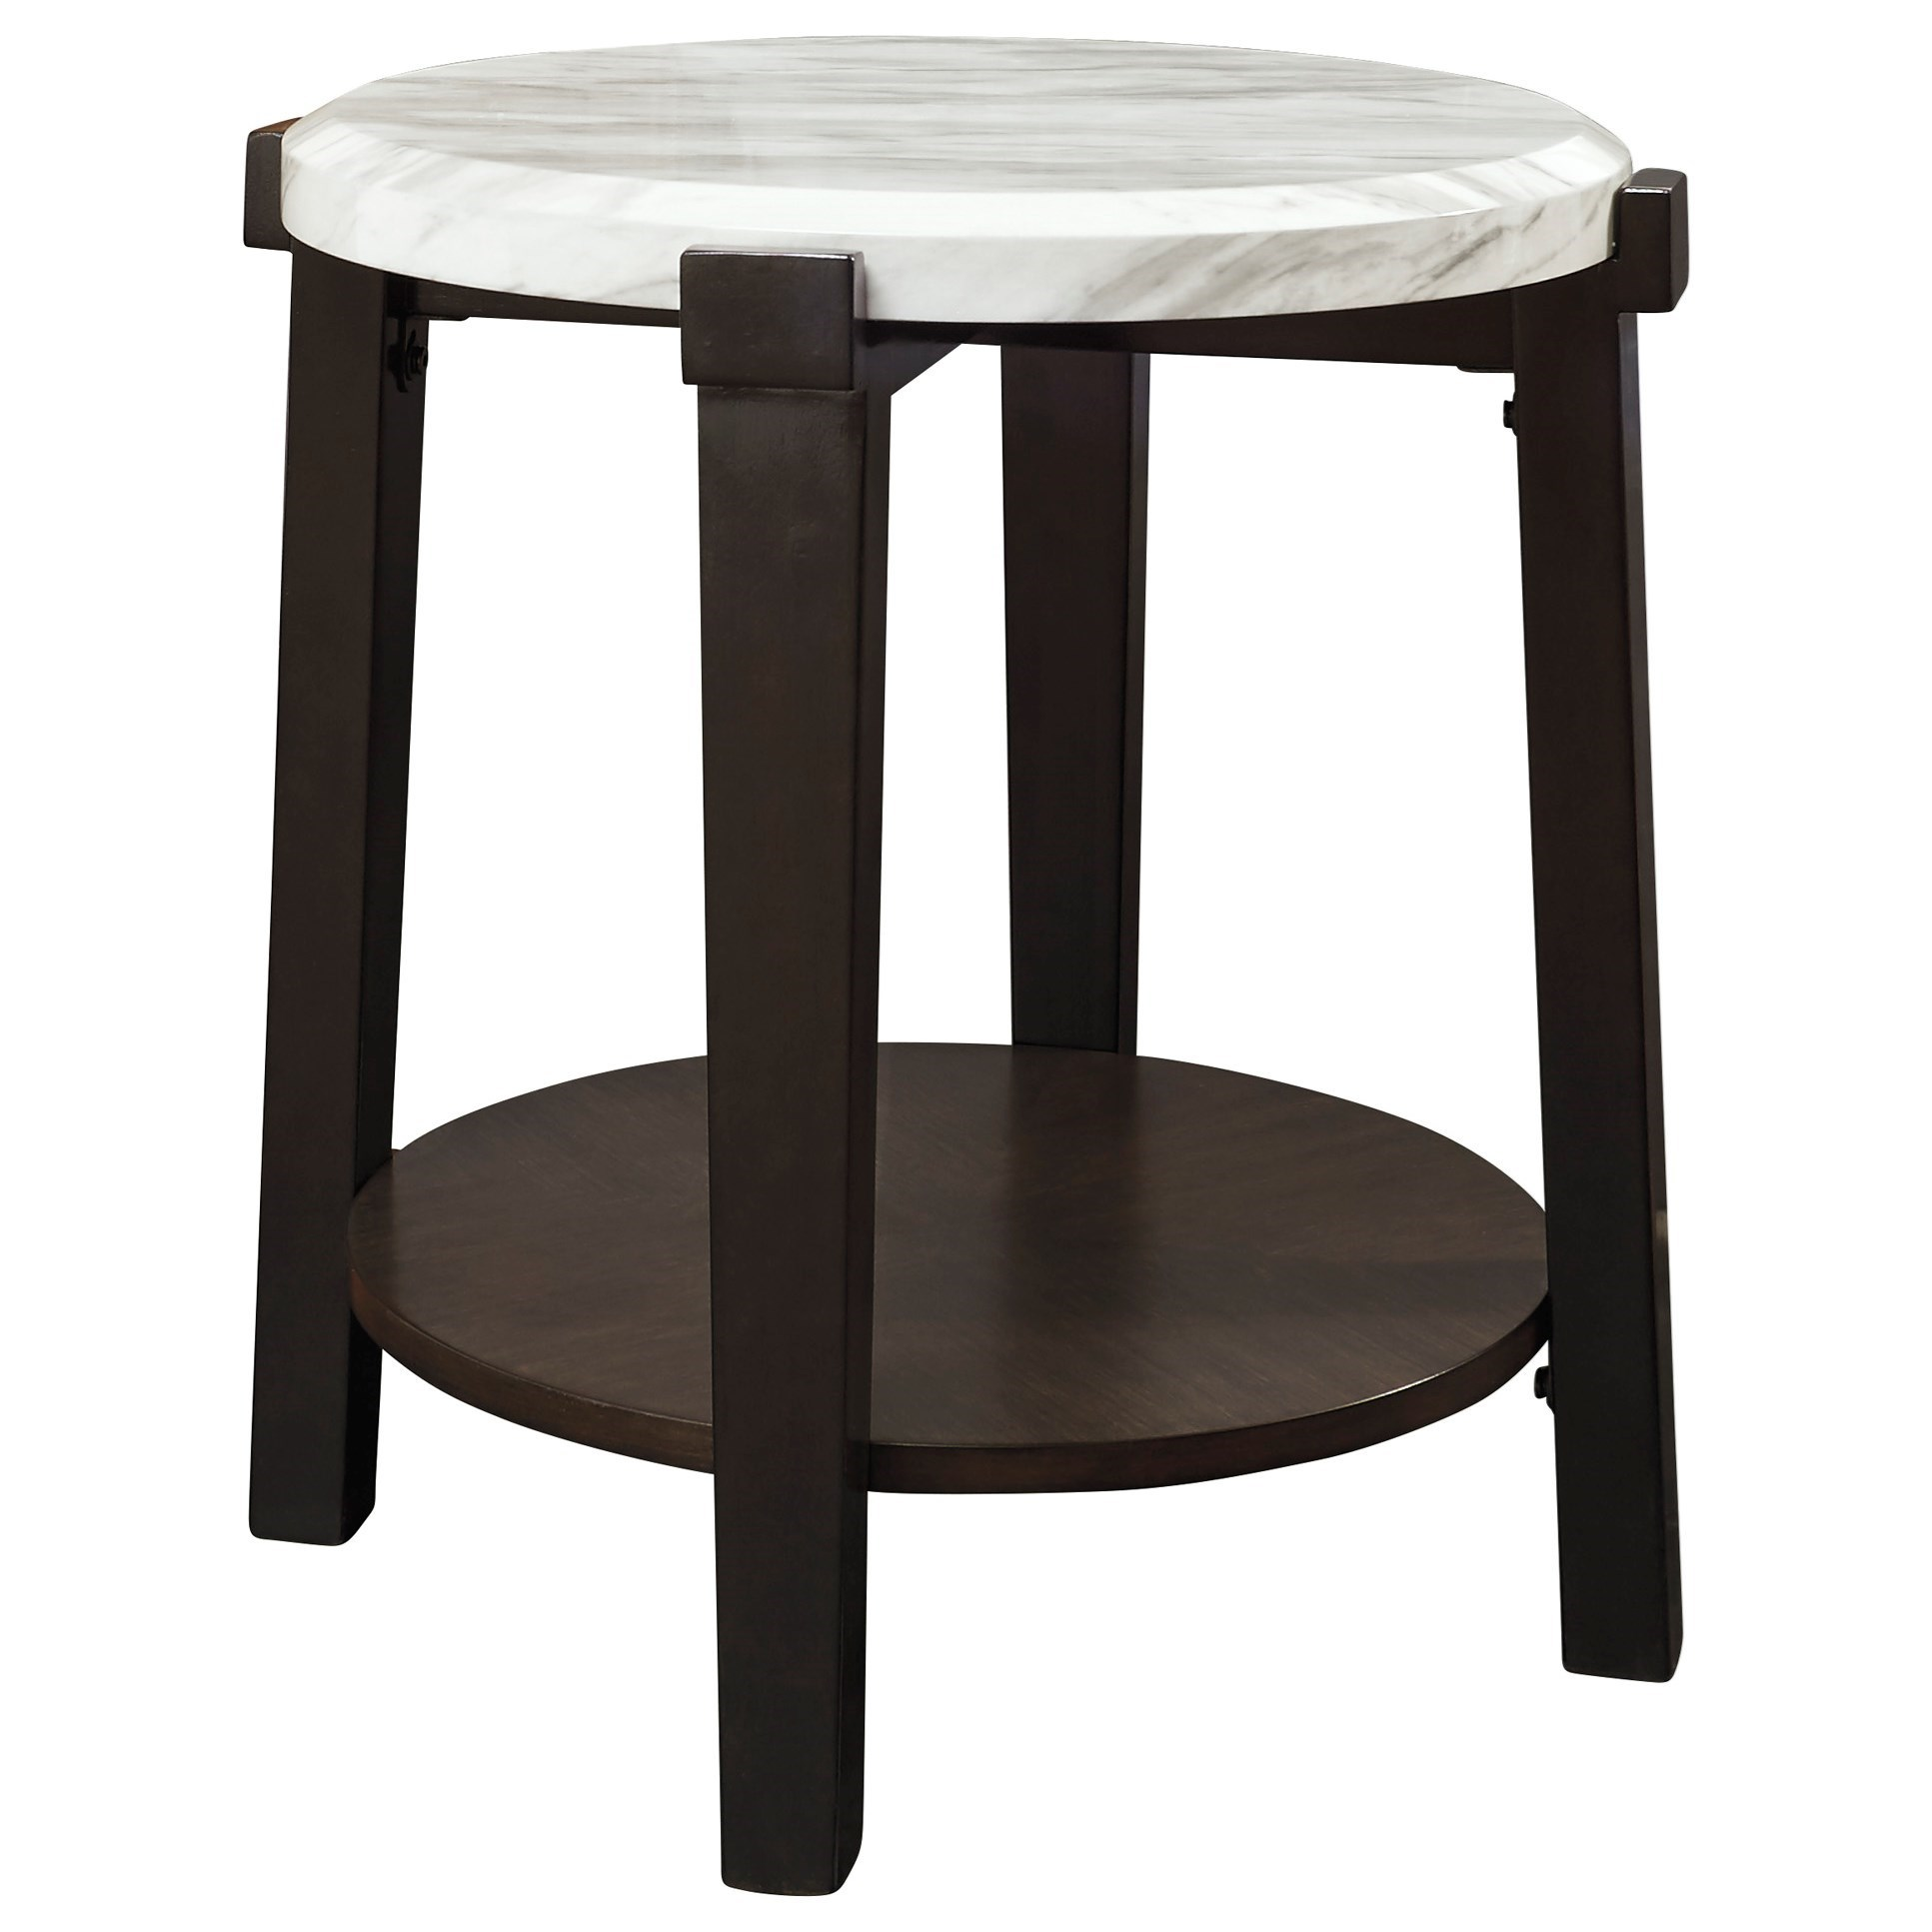 Janilly Round End Table by Ashley (Signature Design) at Johnny Janosik